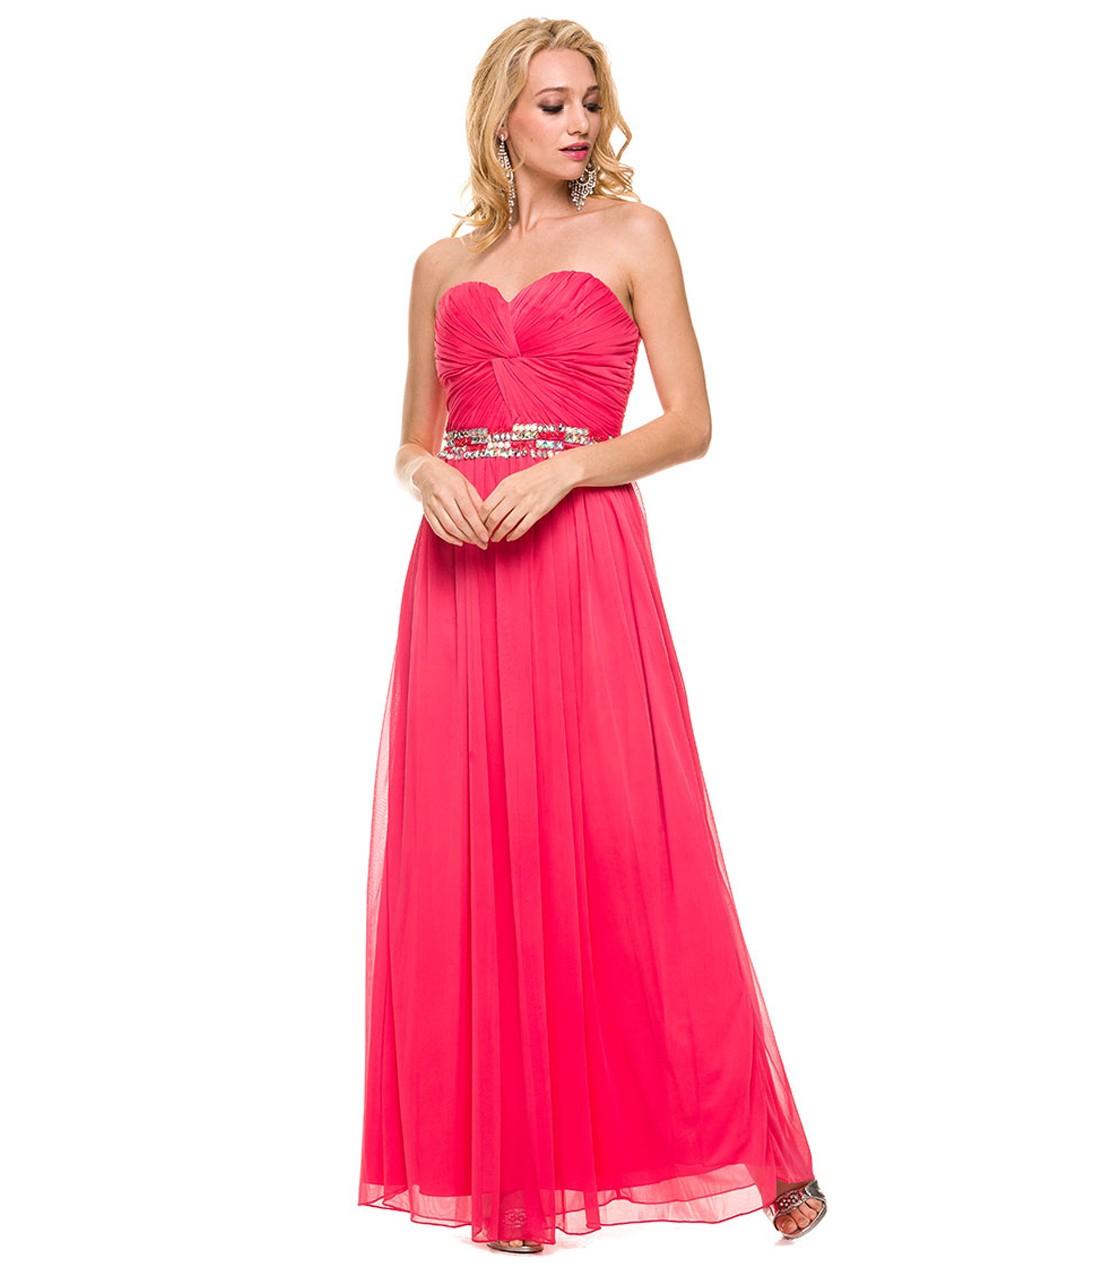 Elegant Pleated Long Watermelon Chiffon Prom Dress with Crystal Belt